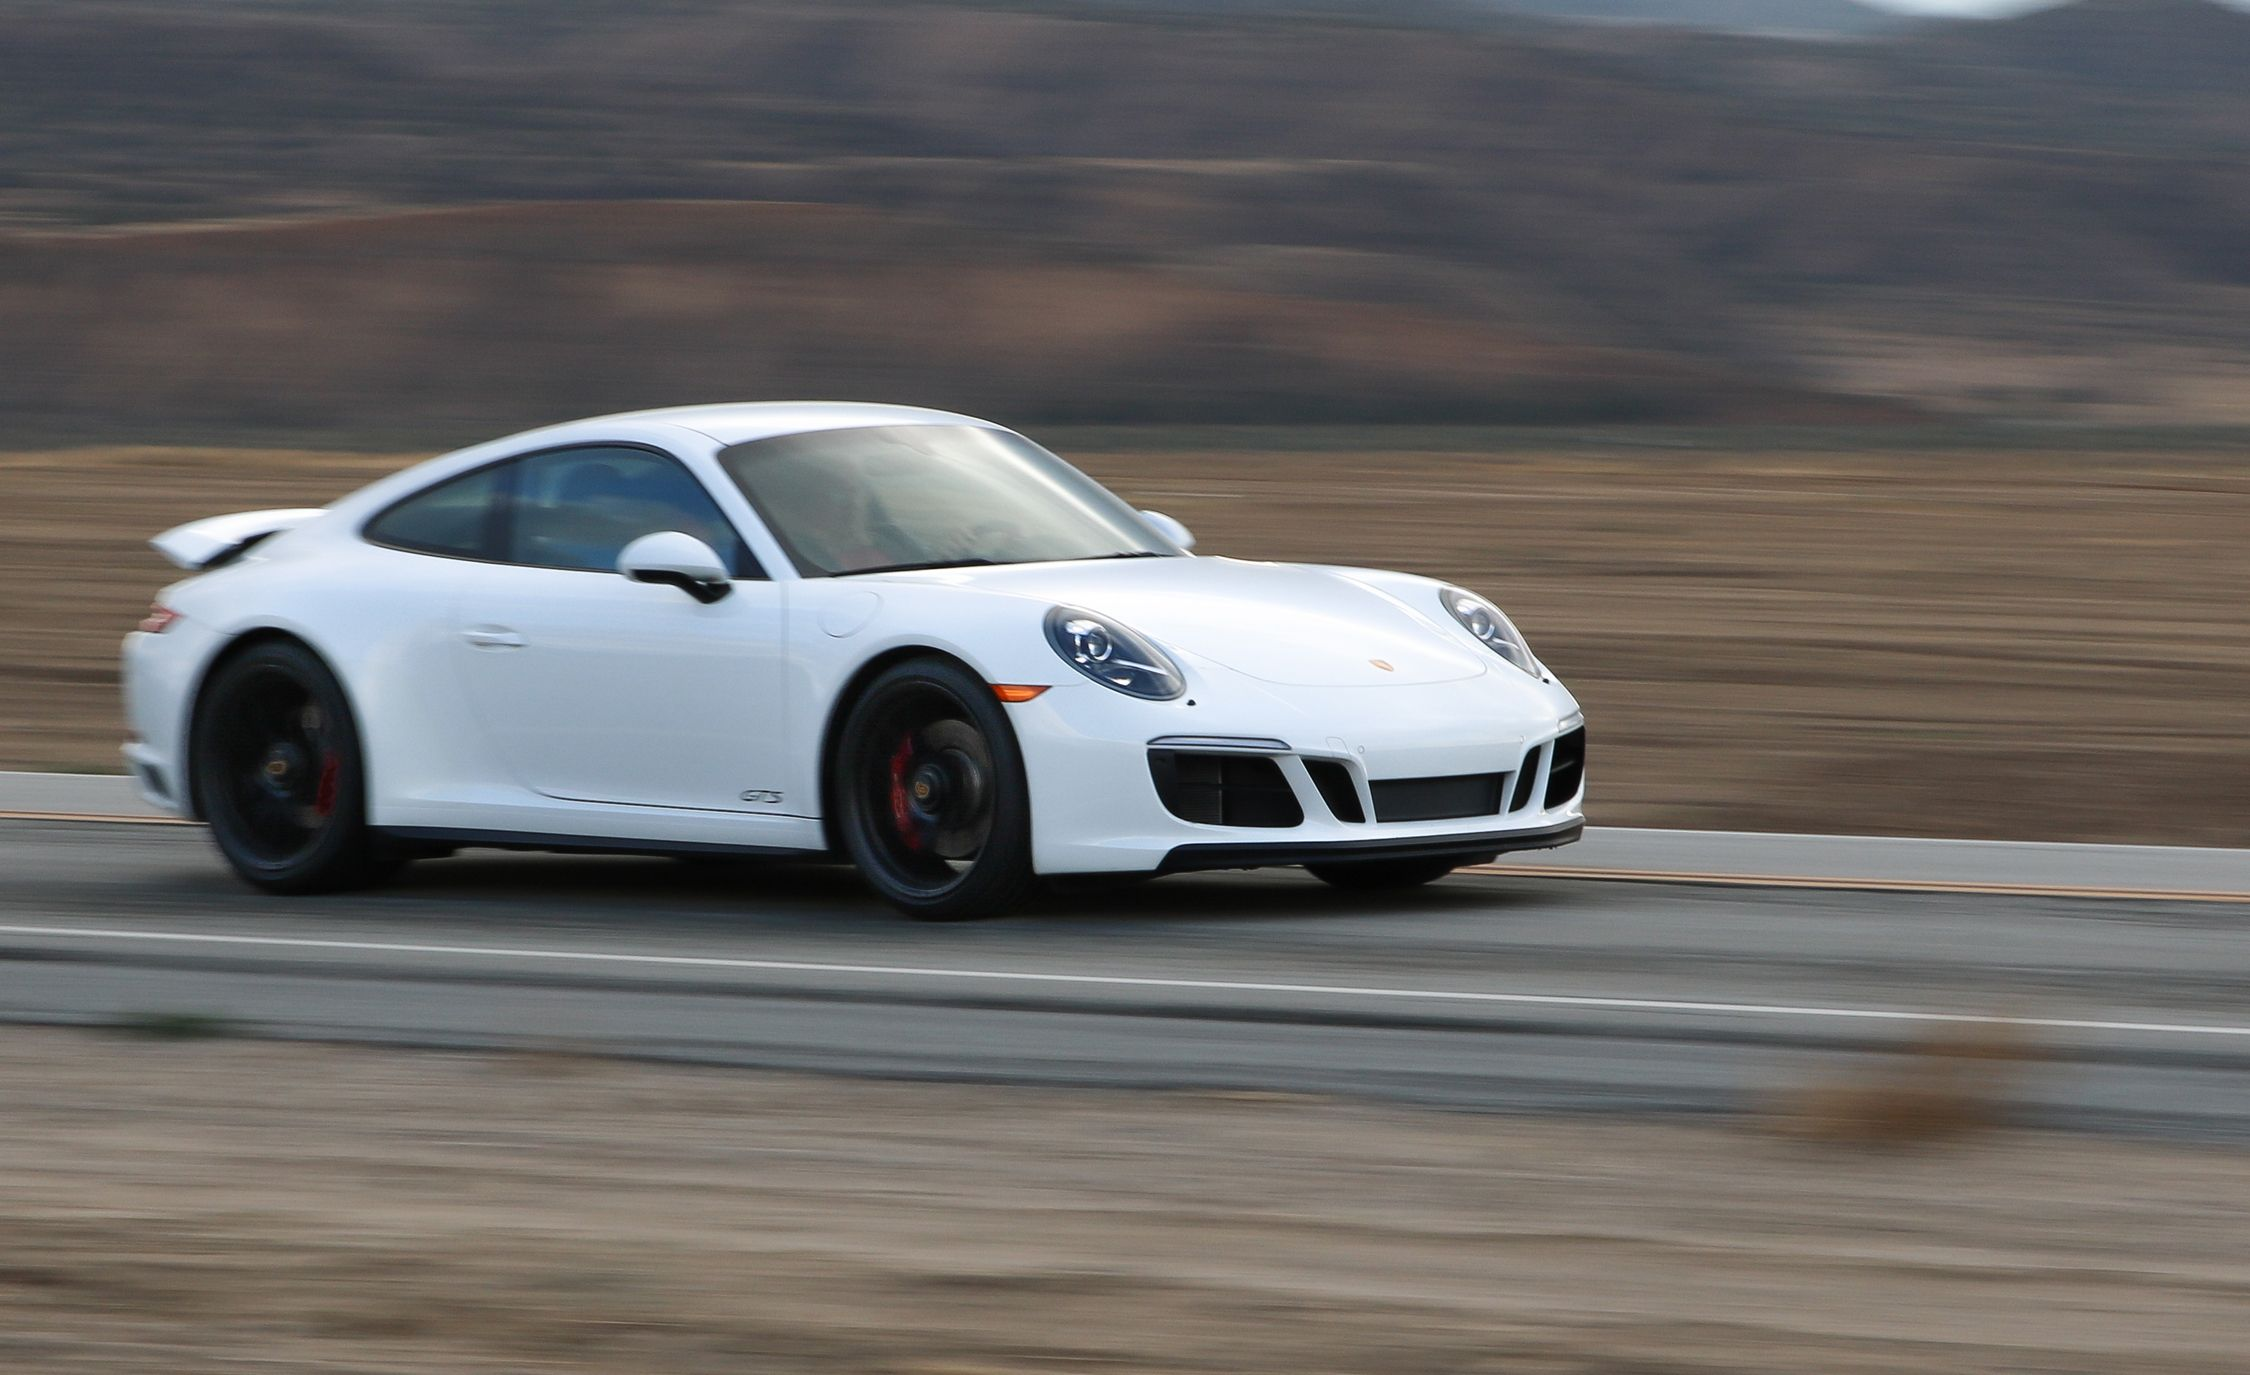 2017 porsche 911 carrera 4 gts manual test review car and driver 2017 porsche 911 carrera 4 gts manual